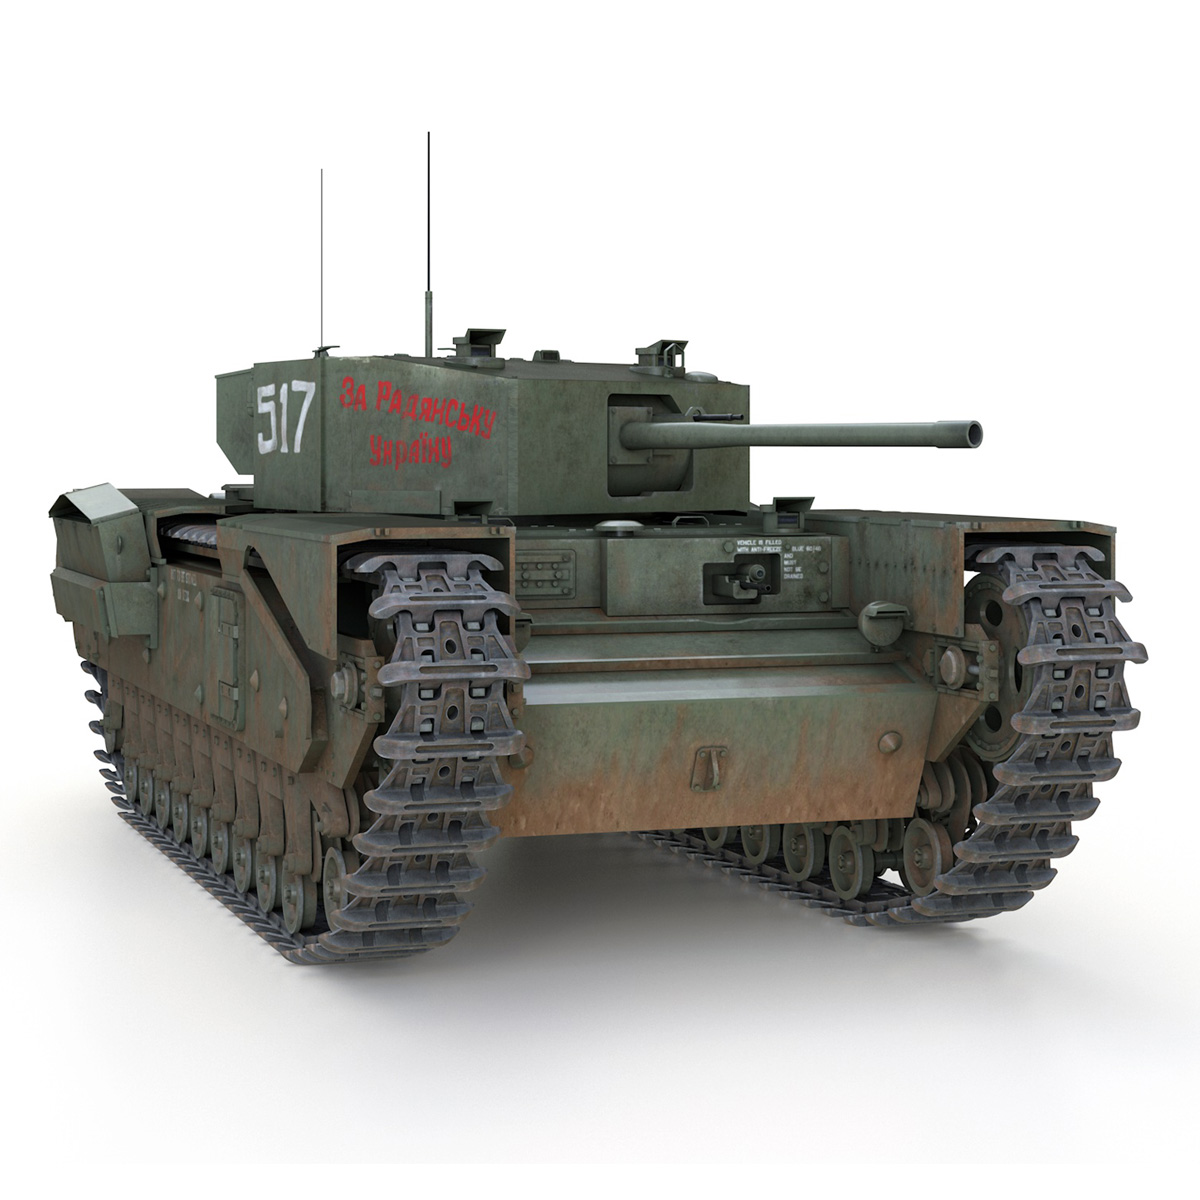 churchill mk iii - 517 - soviet army 3d загвар 3ds fbx c4d lwo obj 272981